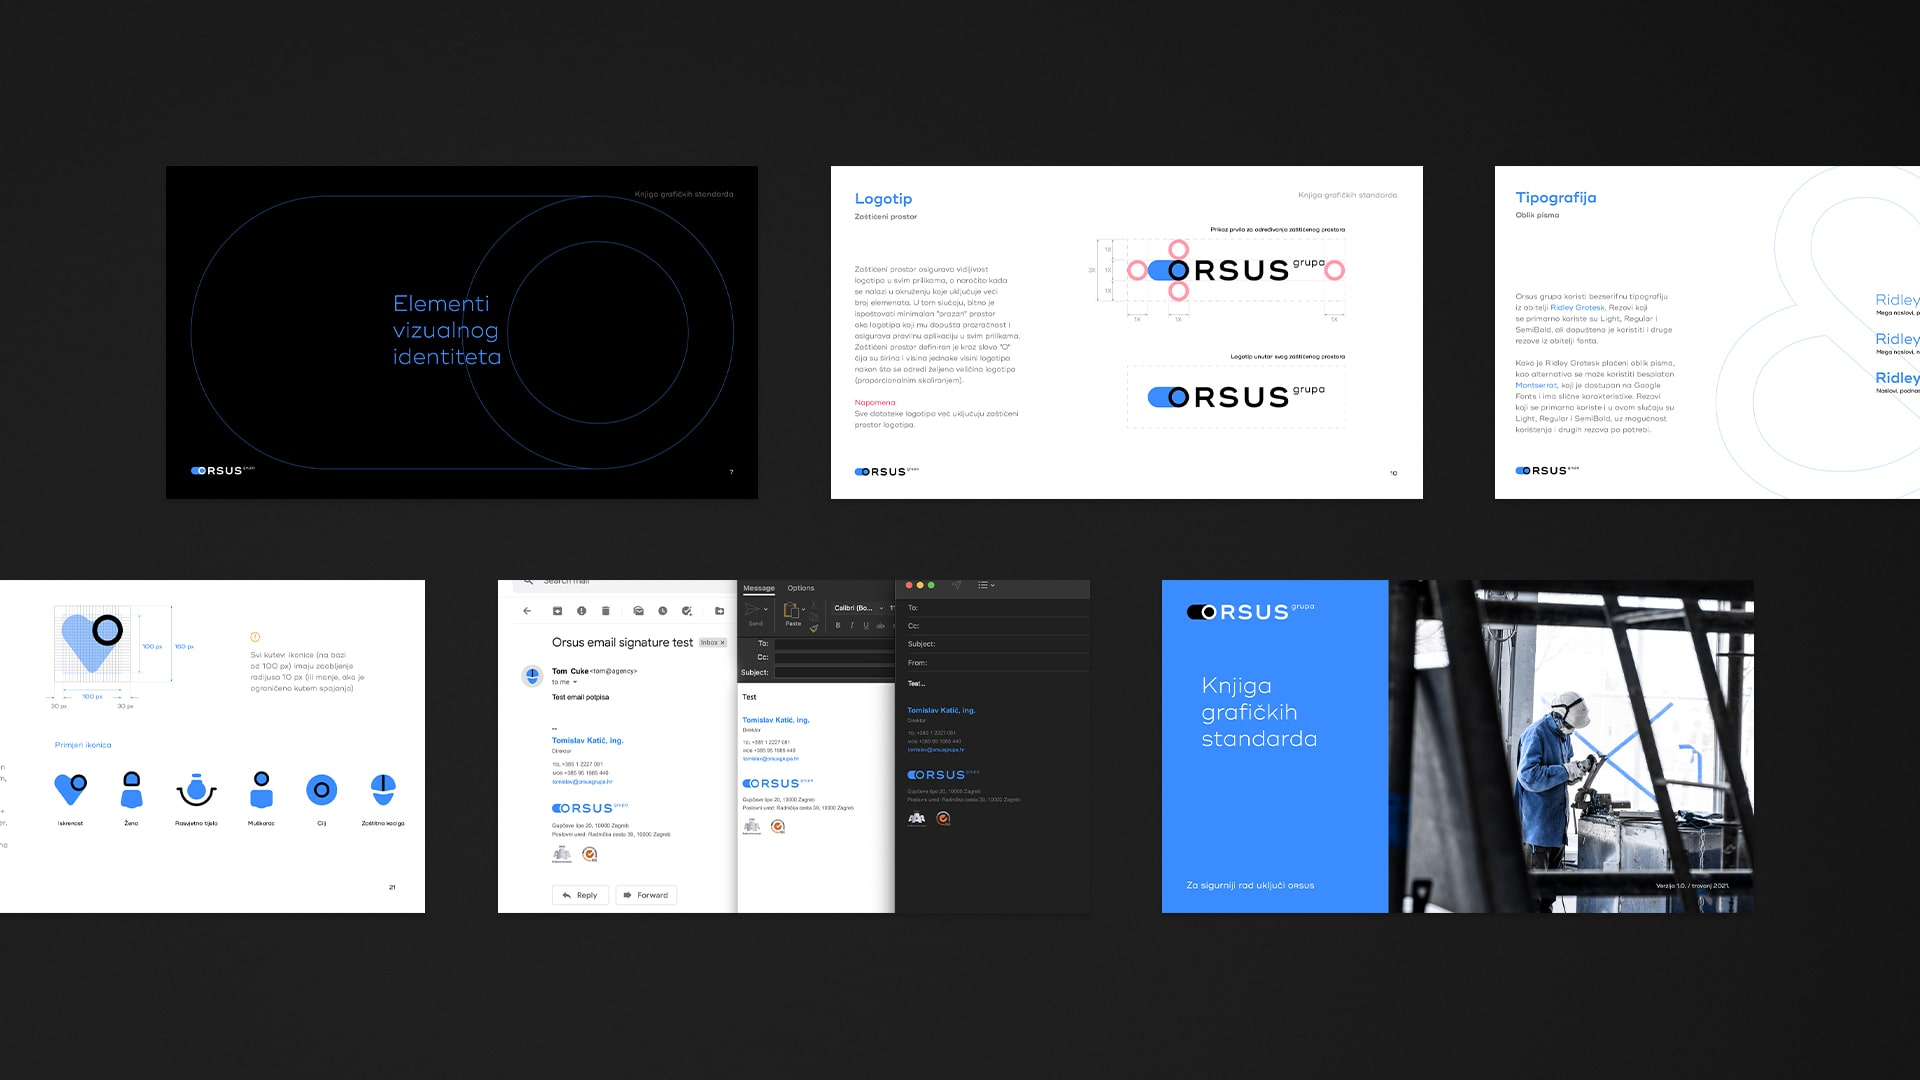 Orsus-grupa-brand-book-by-Emtisquare